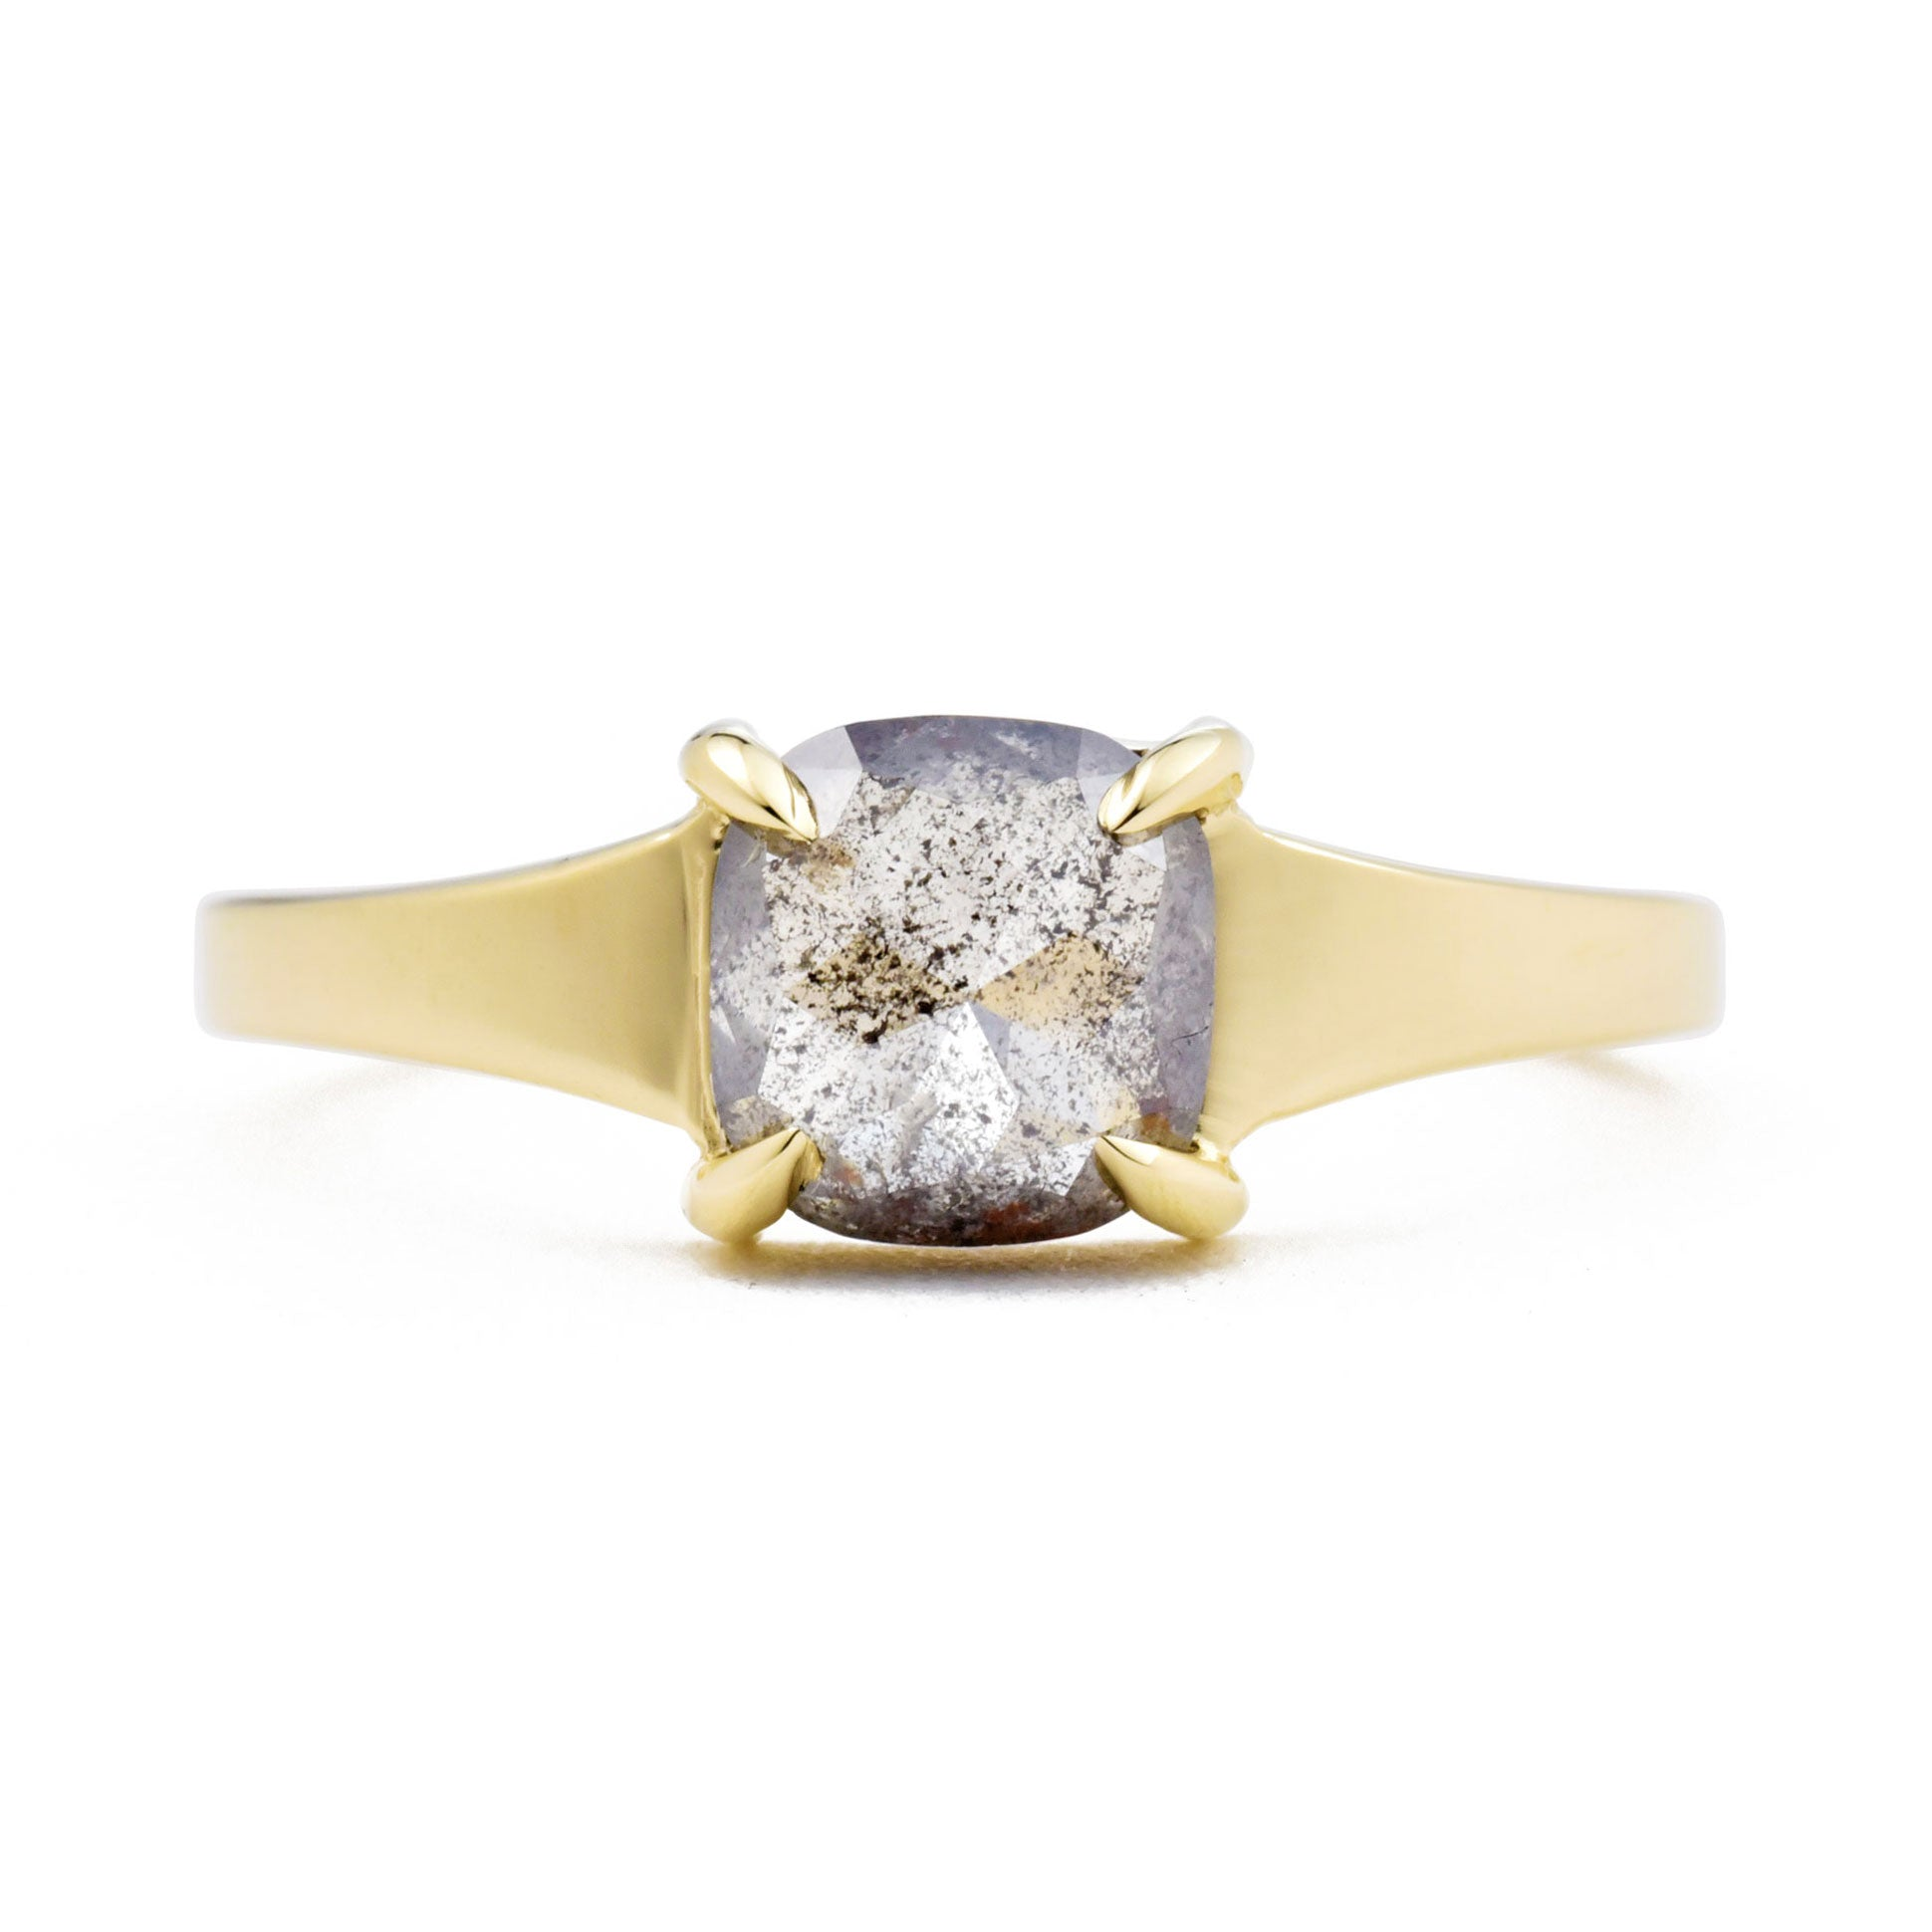 SIZE 6.5 - Astrid Gray Cushion Diamond Ring